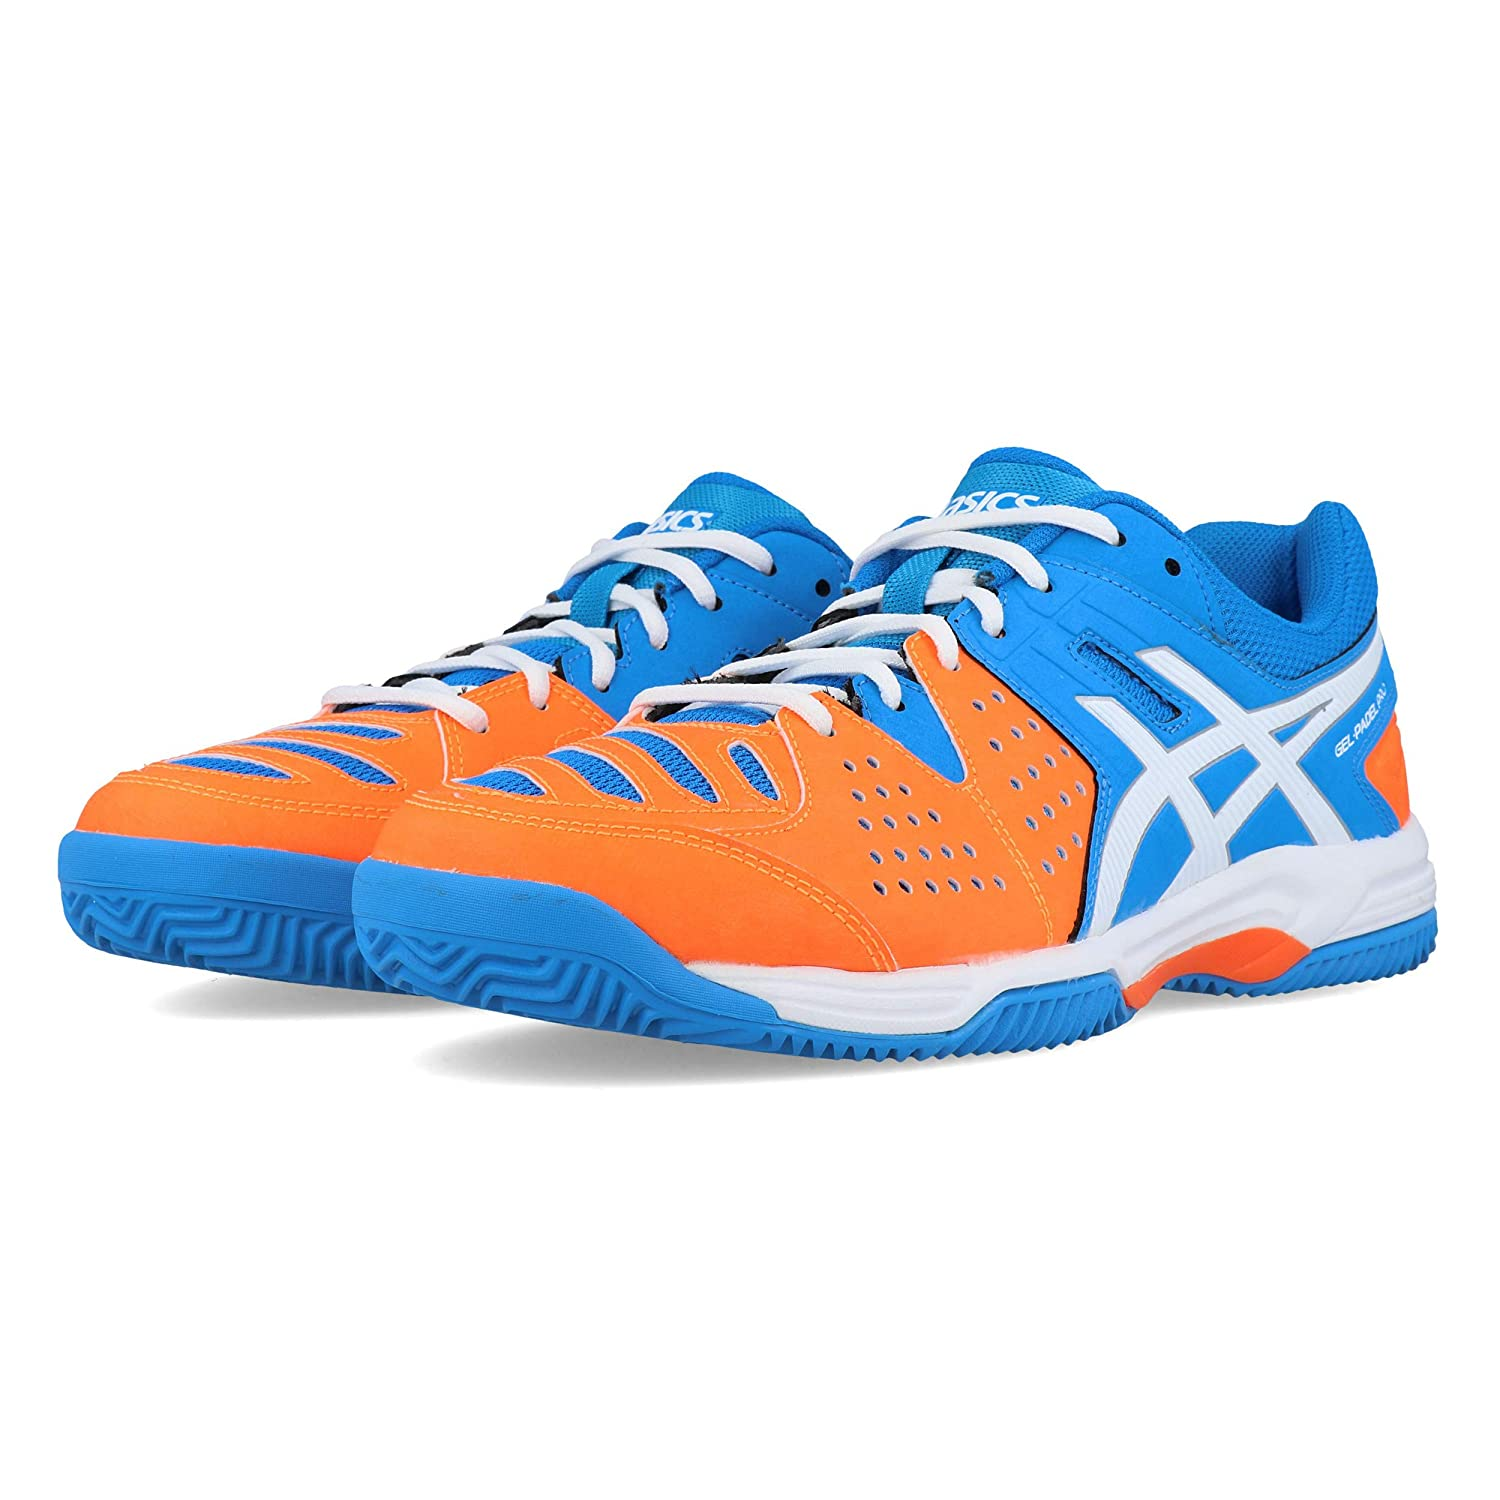 Asics Tennis Shoes Gel-Padel Pro 3 Sg Diva Blue / White / Shocking ...